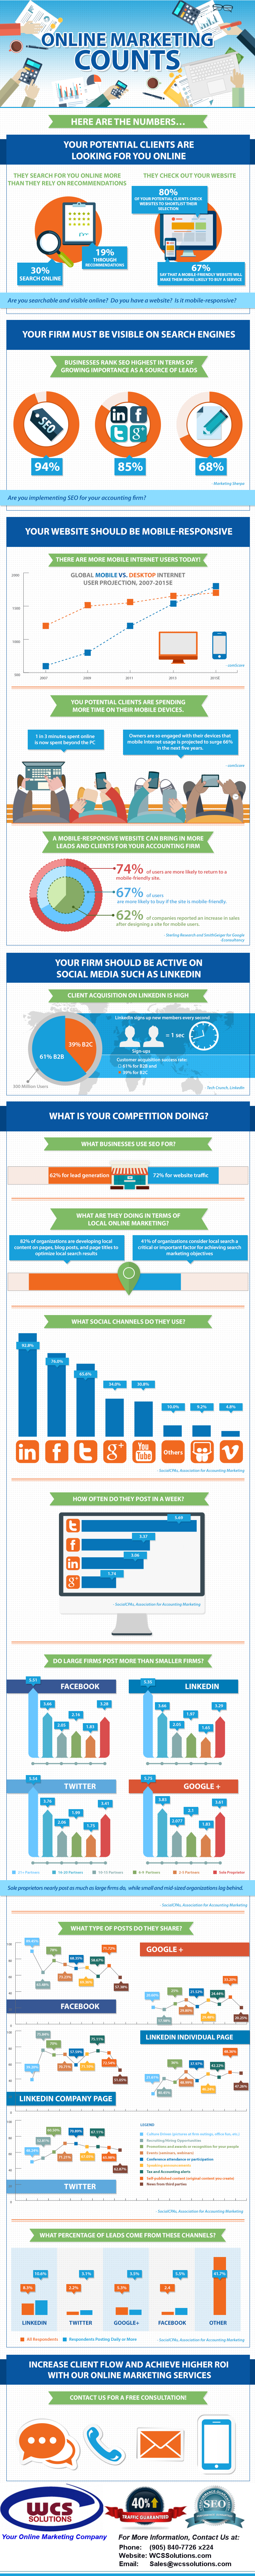 WCS-Solutions-Online-Marketing-For-Accountants-Infographic